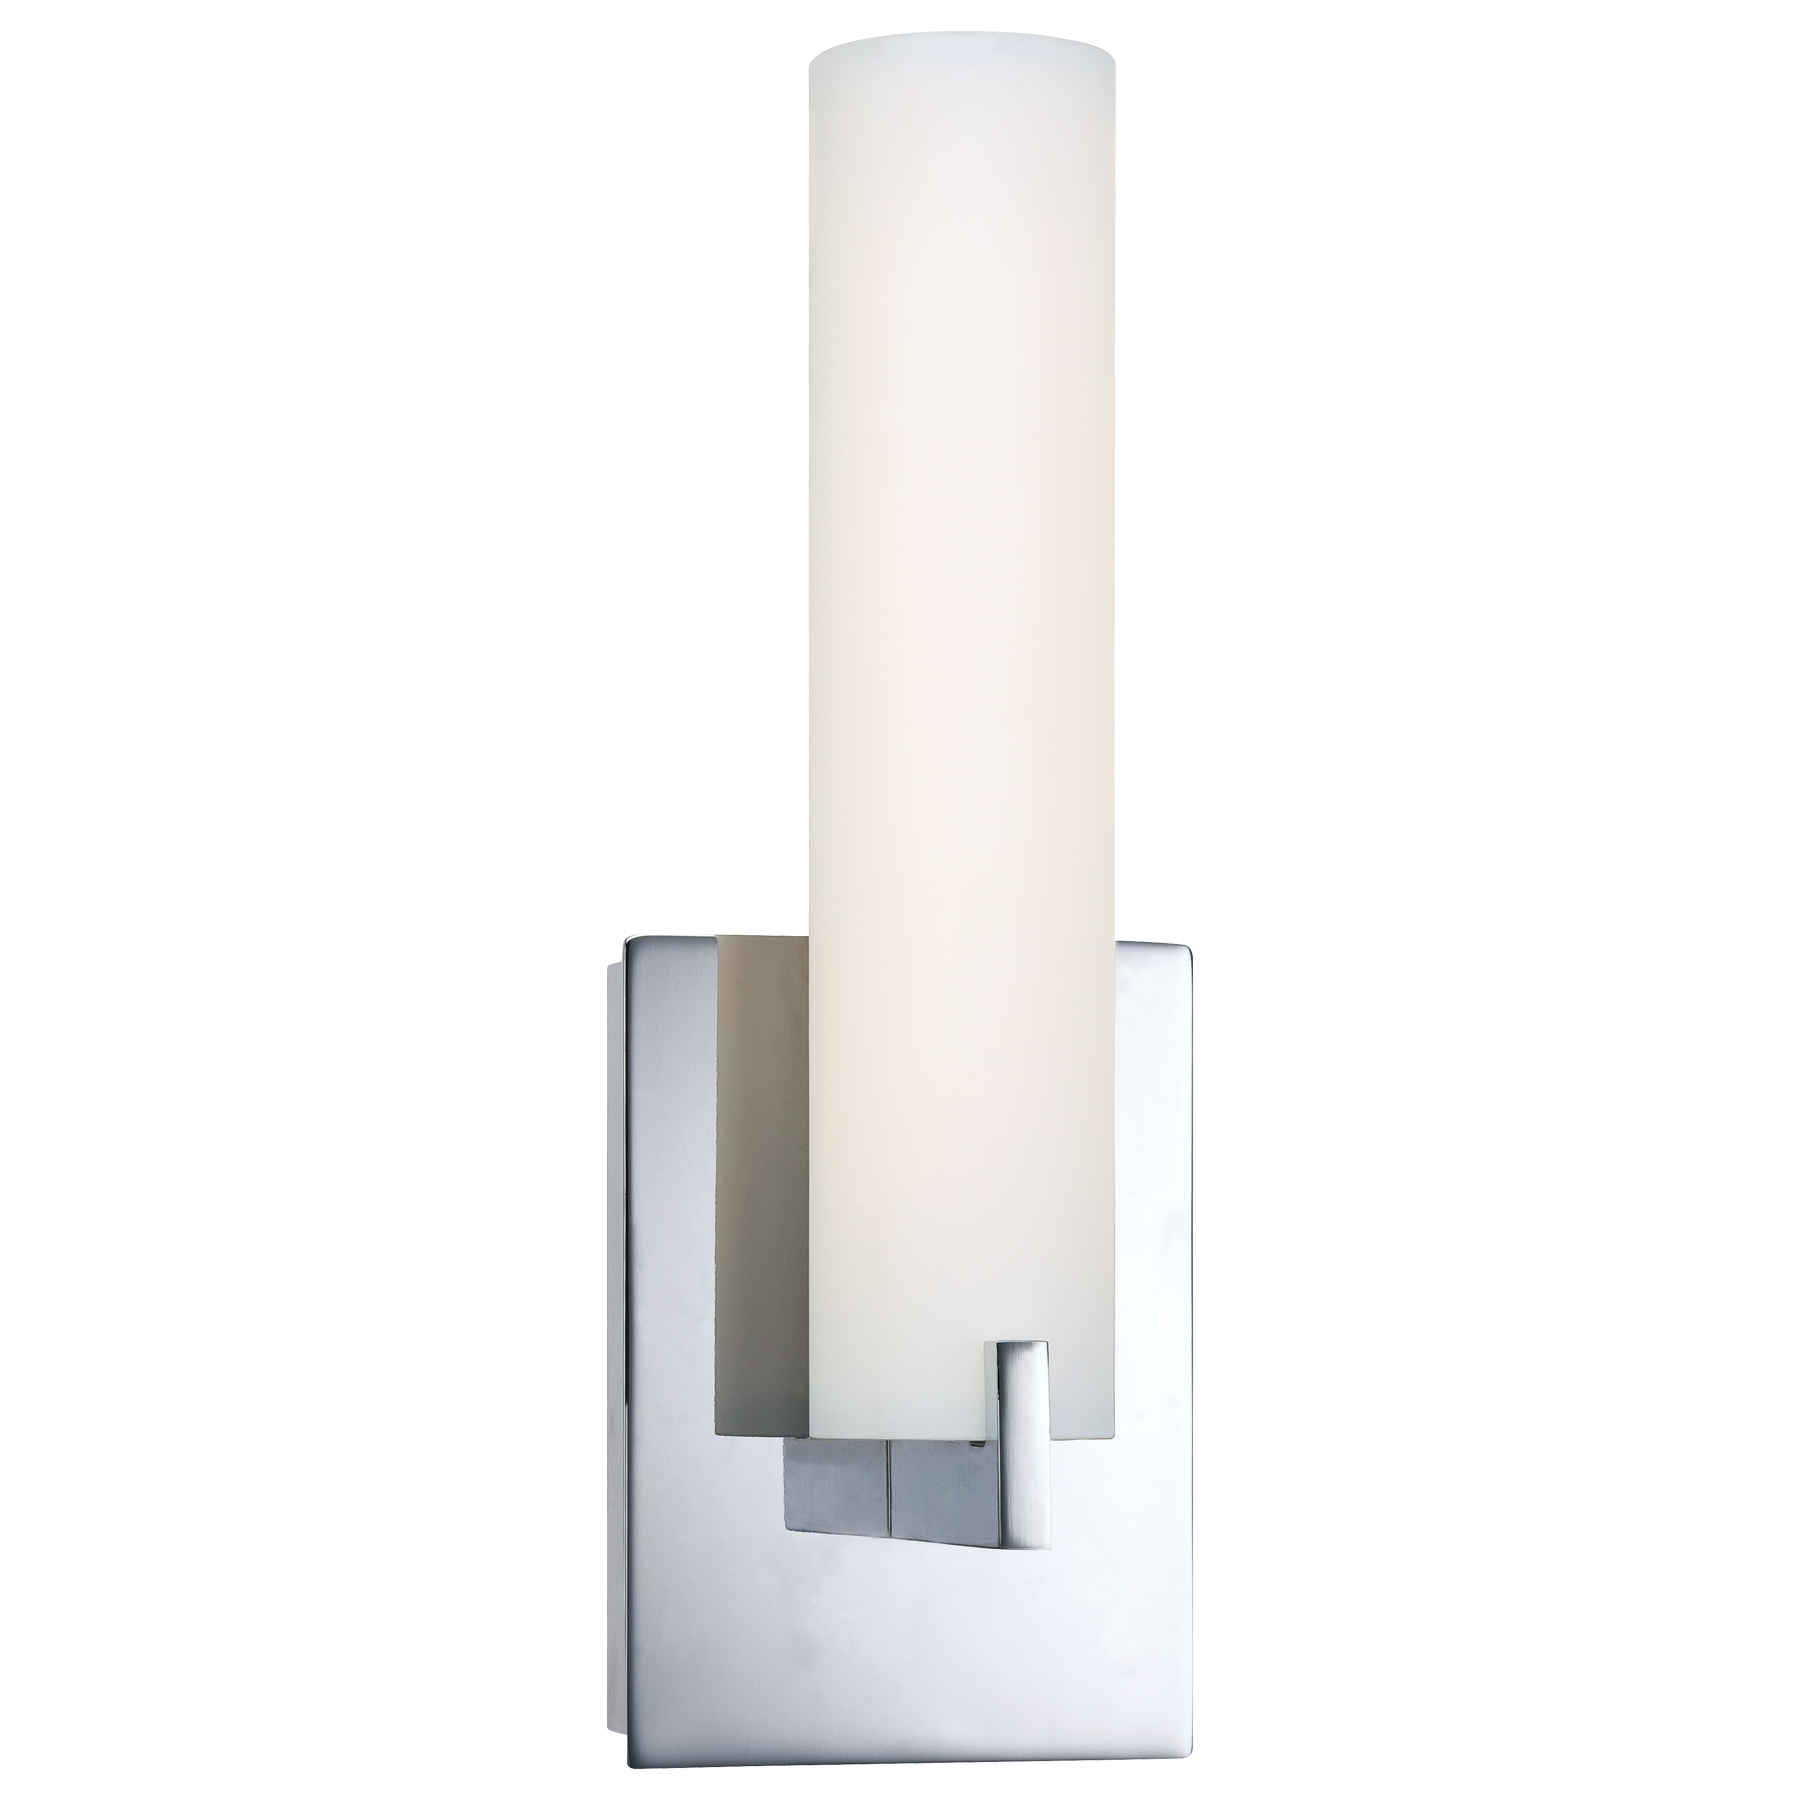 Tube LED Vanity Wall Sconce by George Kovacs P5040-077-L